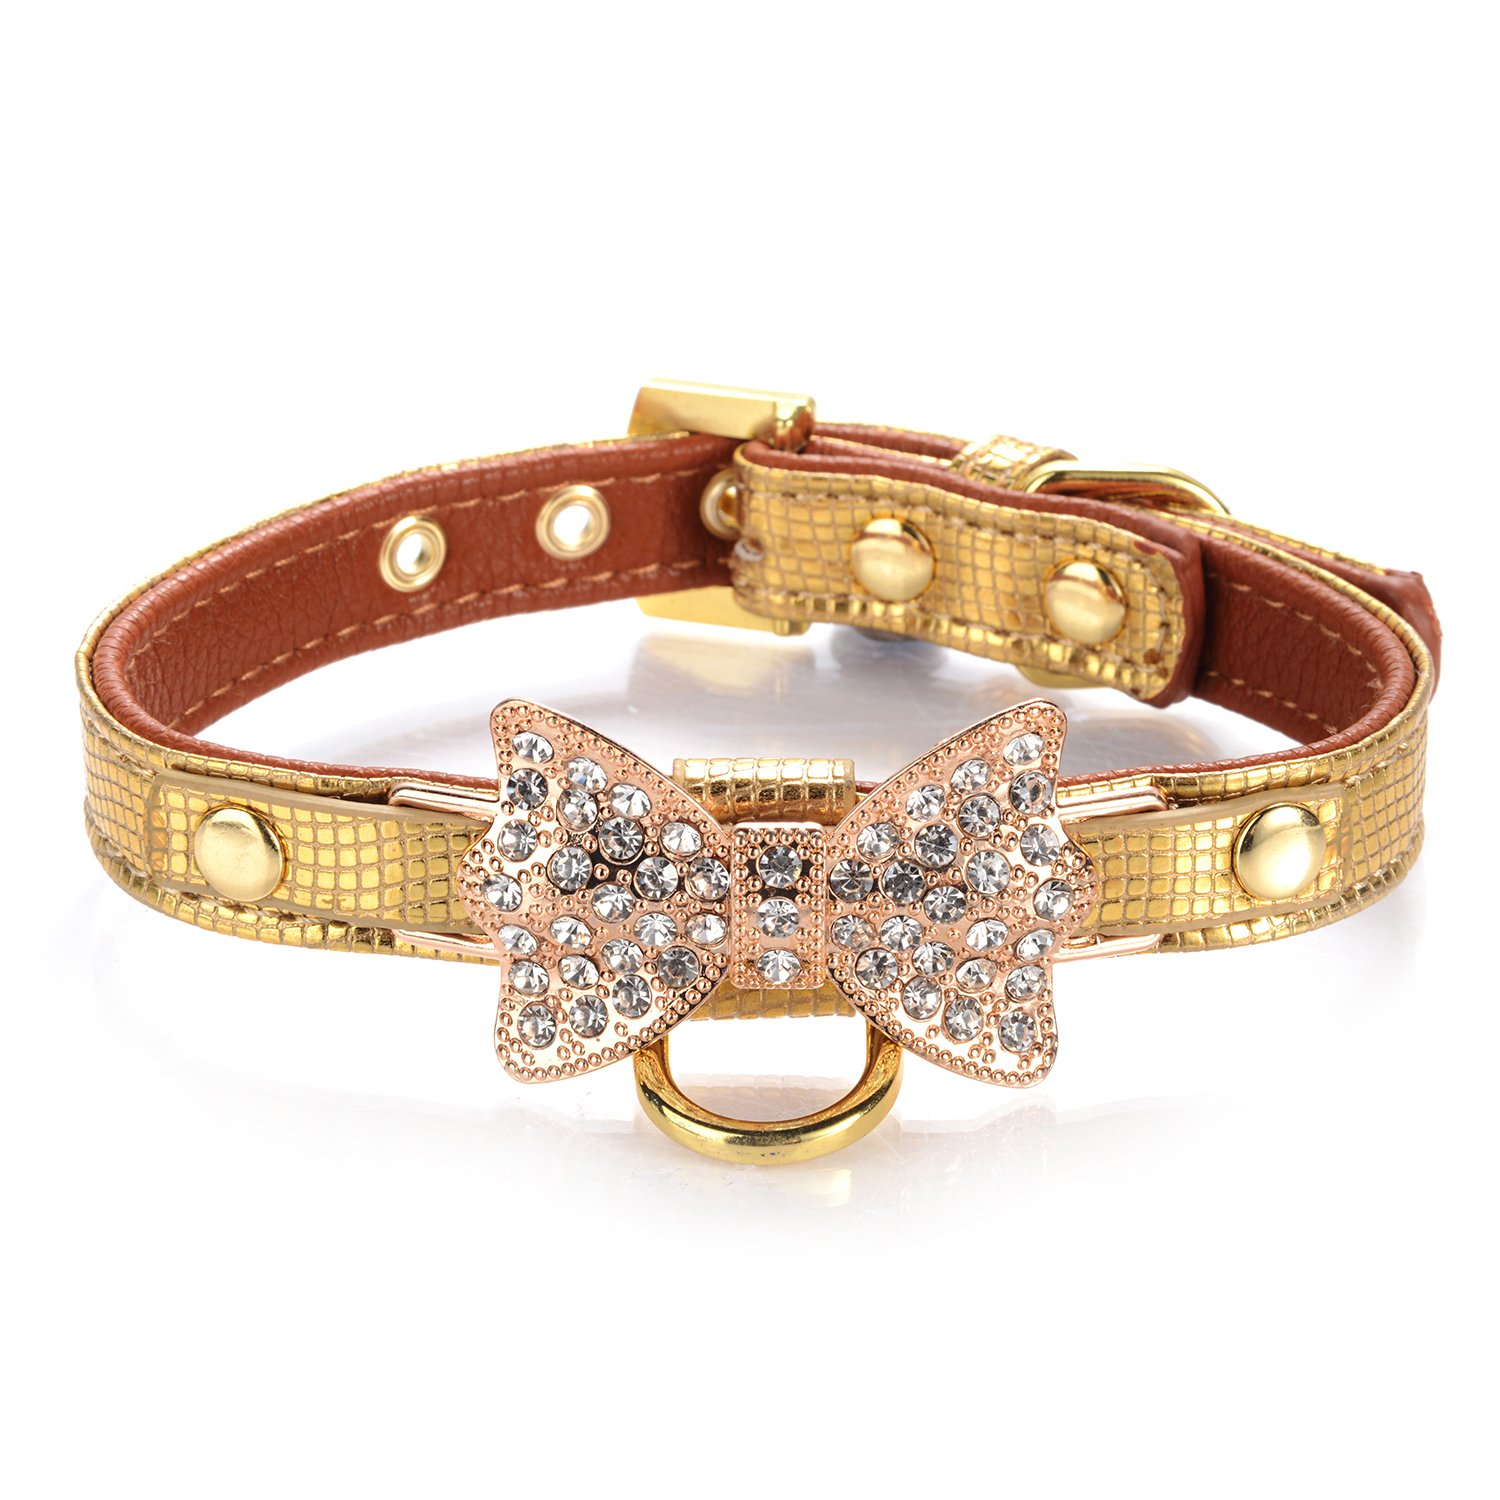 LOVPE Gold Bling Diamond Giltter Leather Fashion Collar with Ring for Tags for Small Dogs,Cat,Puppy and Kitty Walking Travel Party Gifts Tedd, Poodle Dog,Bulldog and Yorkshire Terrier (XS, Gold)